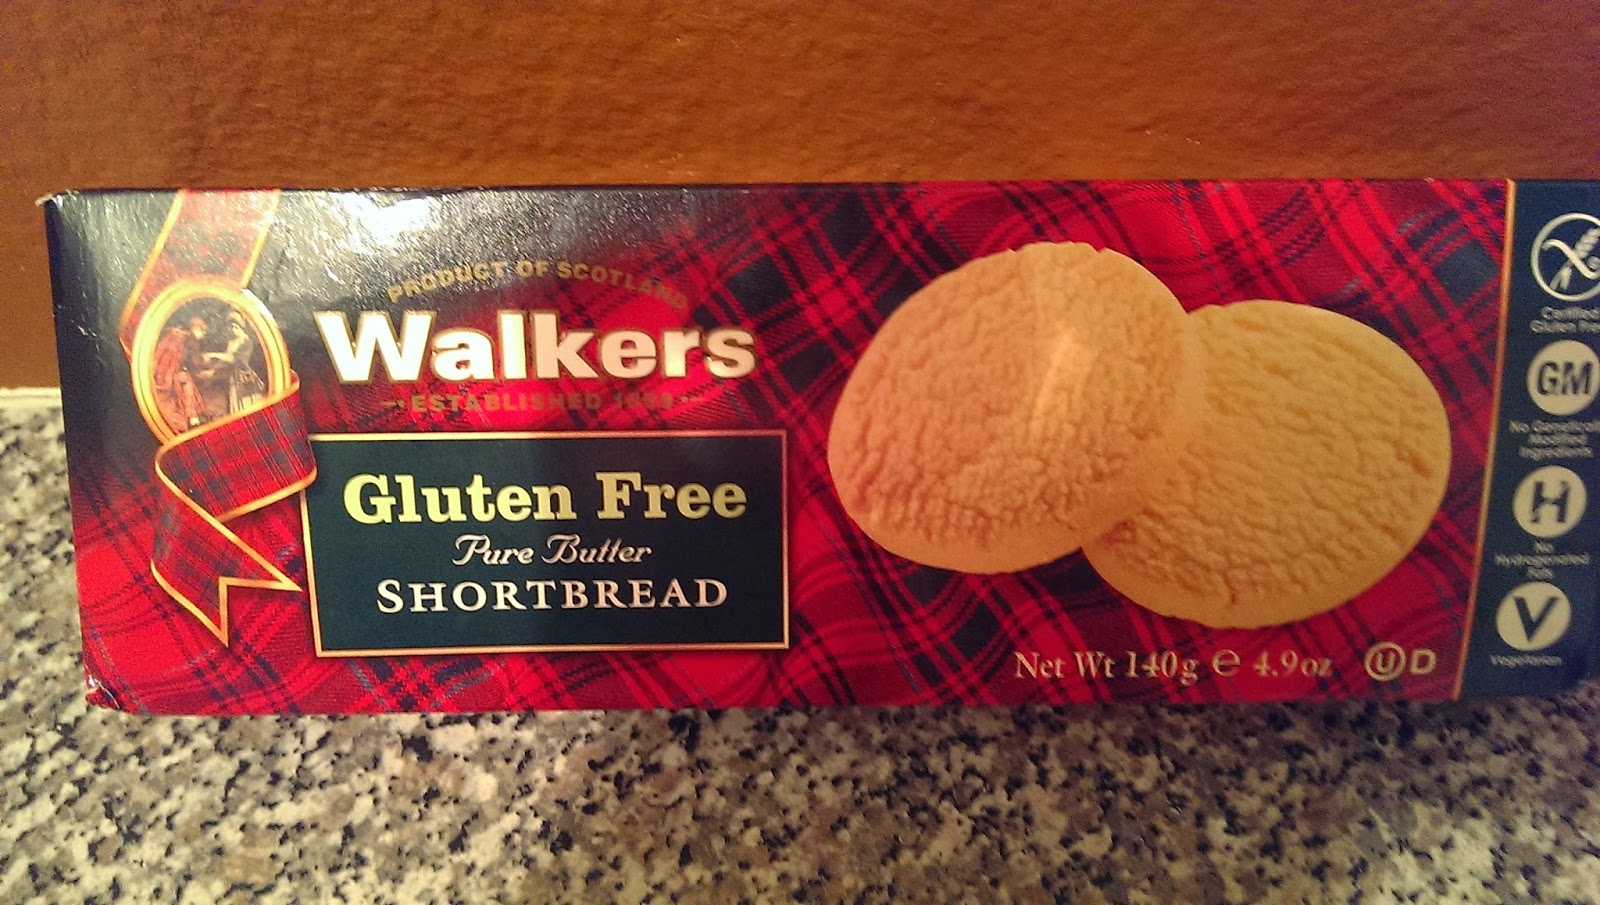 Walkers%2BShortbread Walkers Debuts Gluten Free Shortbread Line in the U.S. - Gluten Free Treat